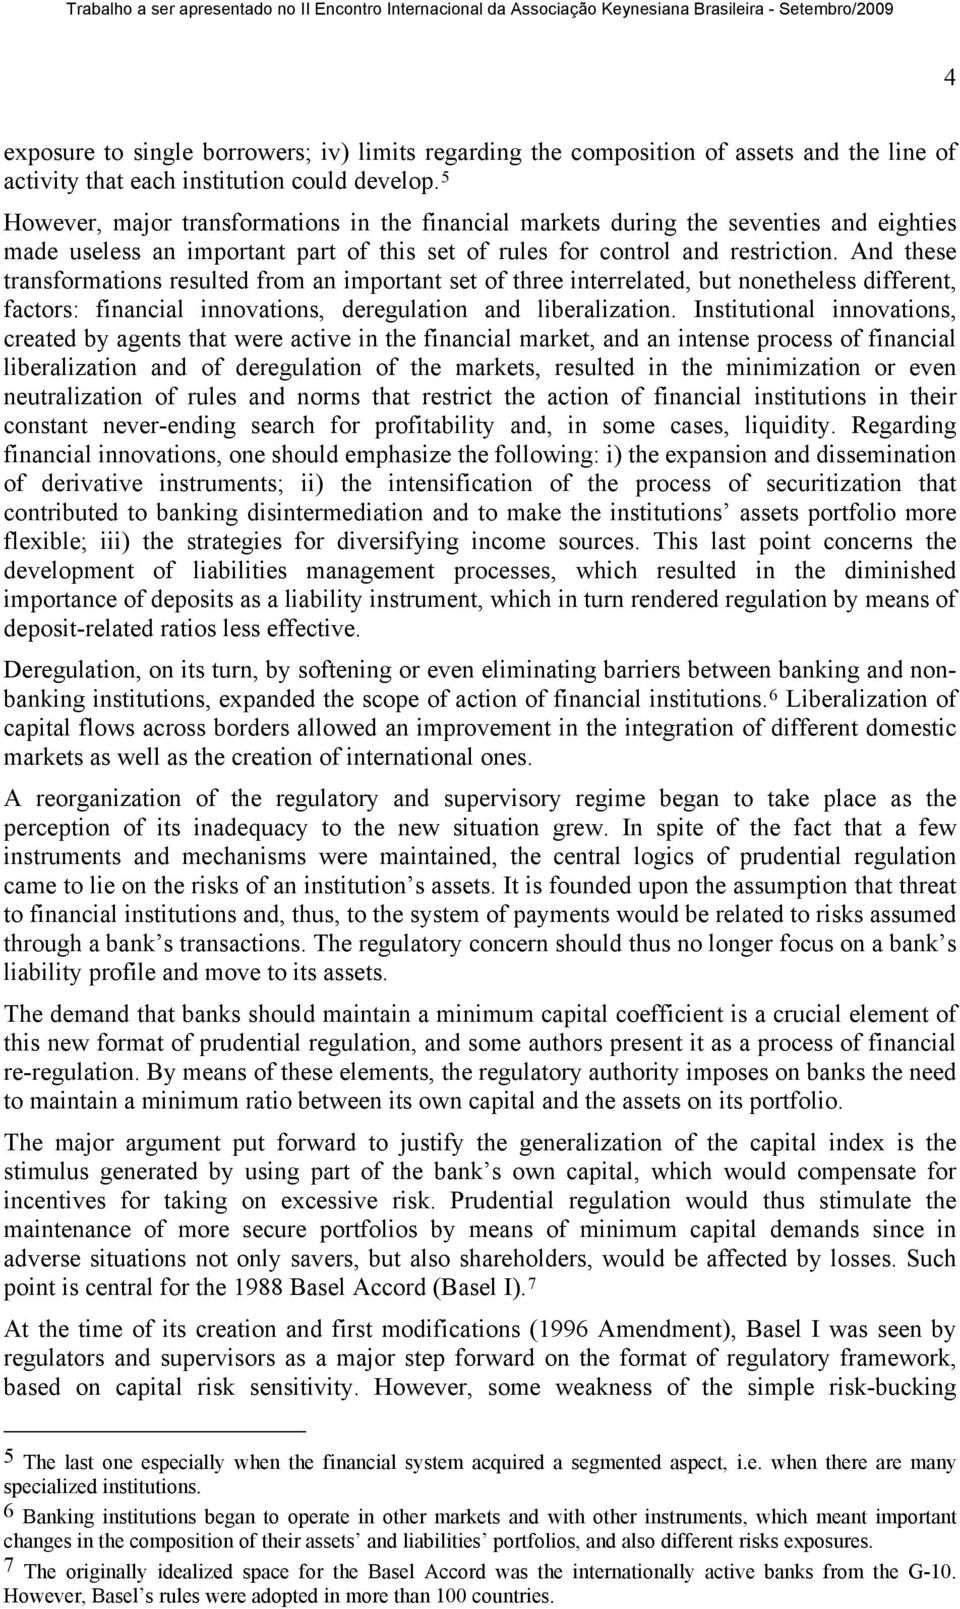 And these transformations resulted from an important set of three interrelated, but nonetheless different, factors: financial innovations, deregulation and liberalization.